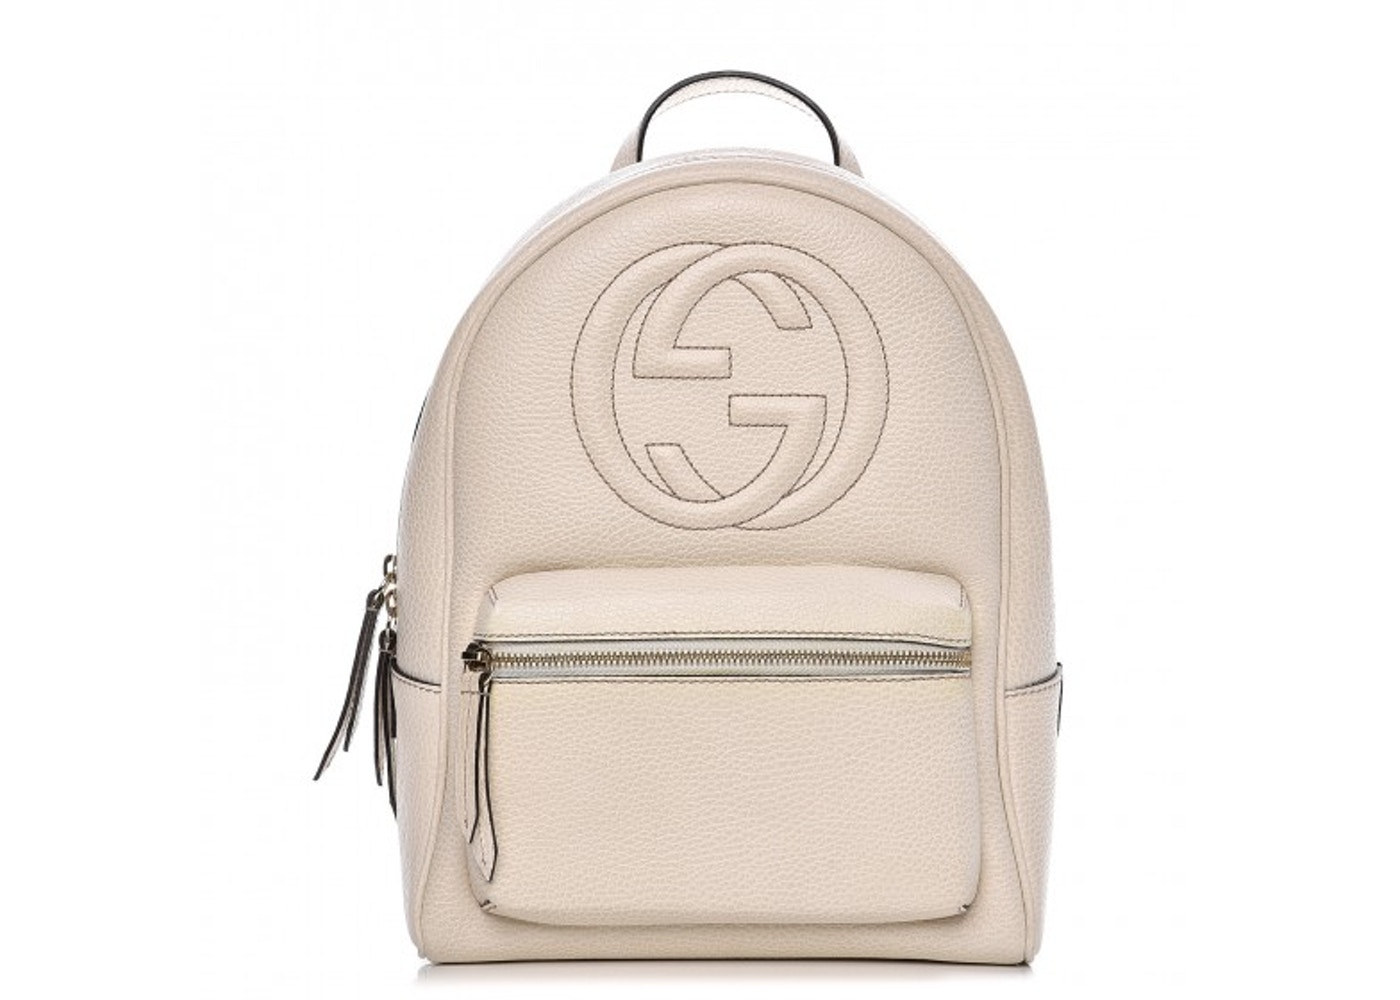 best price professional design recognized brands Gucci Soho Chain Backpack Off White